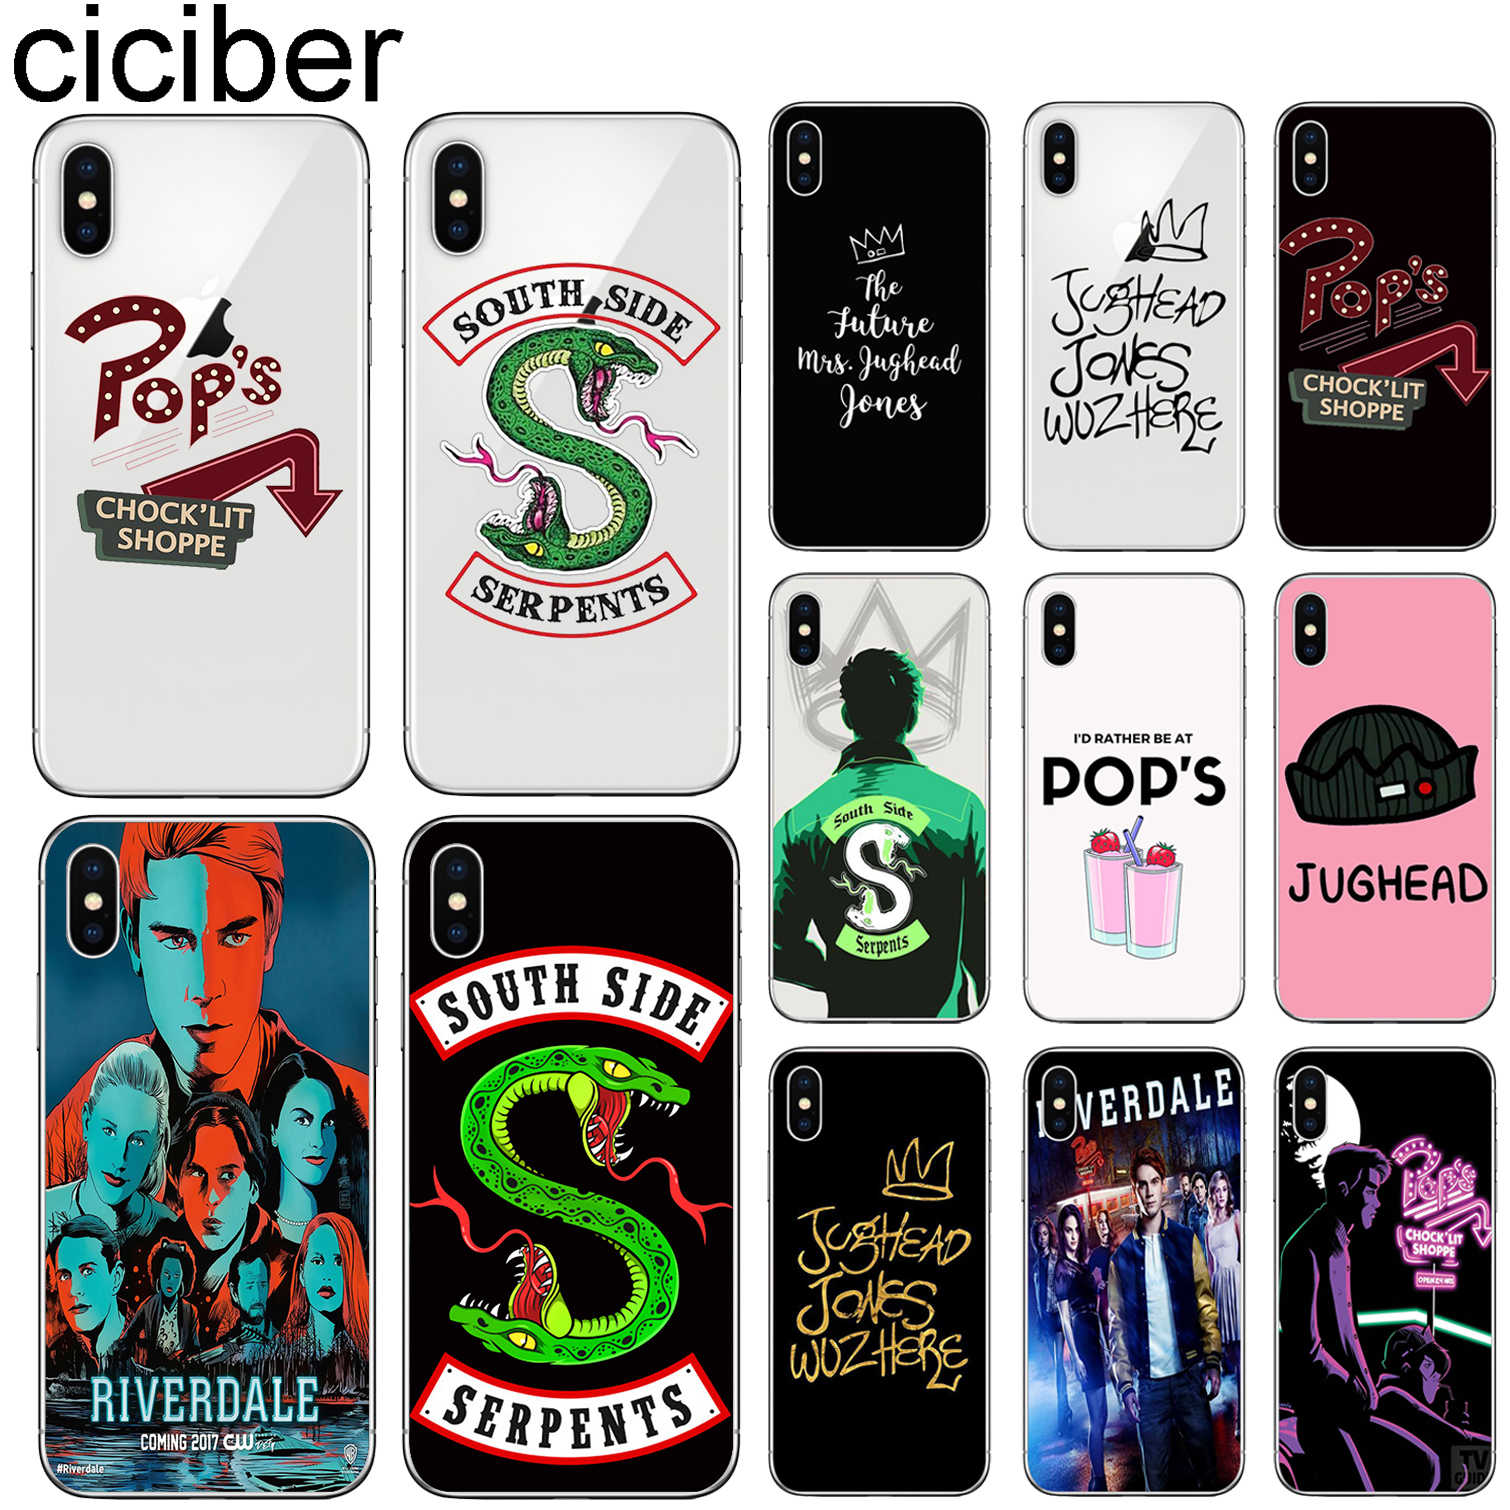 Ciciber Riverdale Case Voor Iphone 11 7 8 6 6S Plus 5S Se 2020 11 Pro Max Siliconen case Voor Iphone X Xr Xs Max Cover Funda Capa